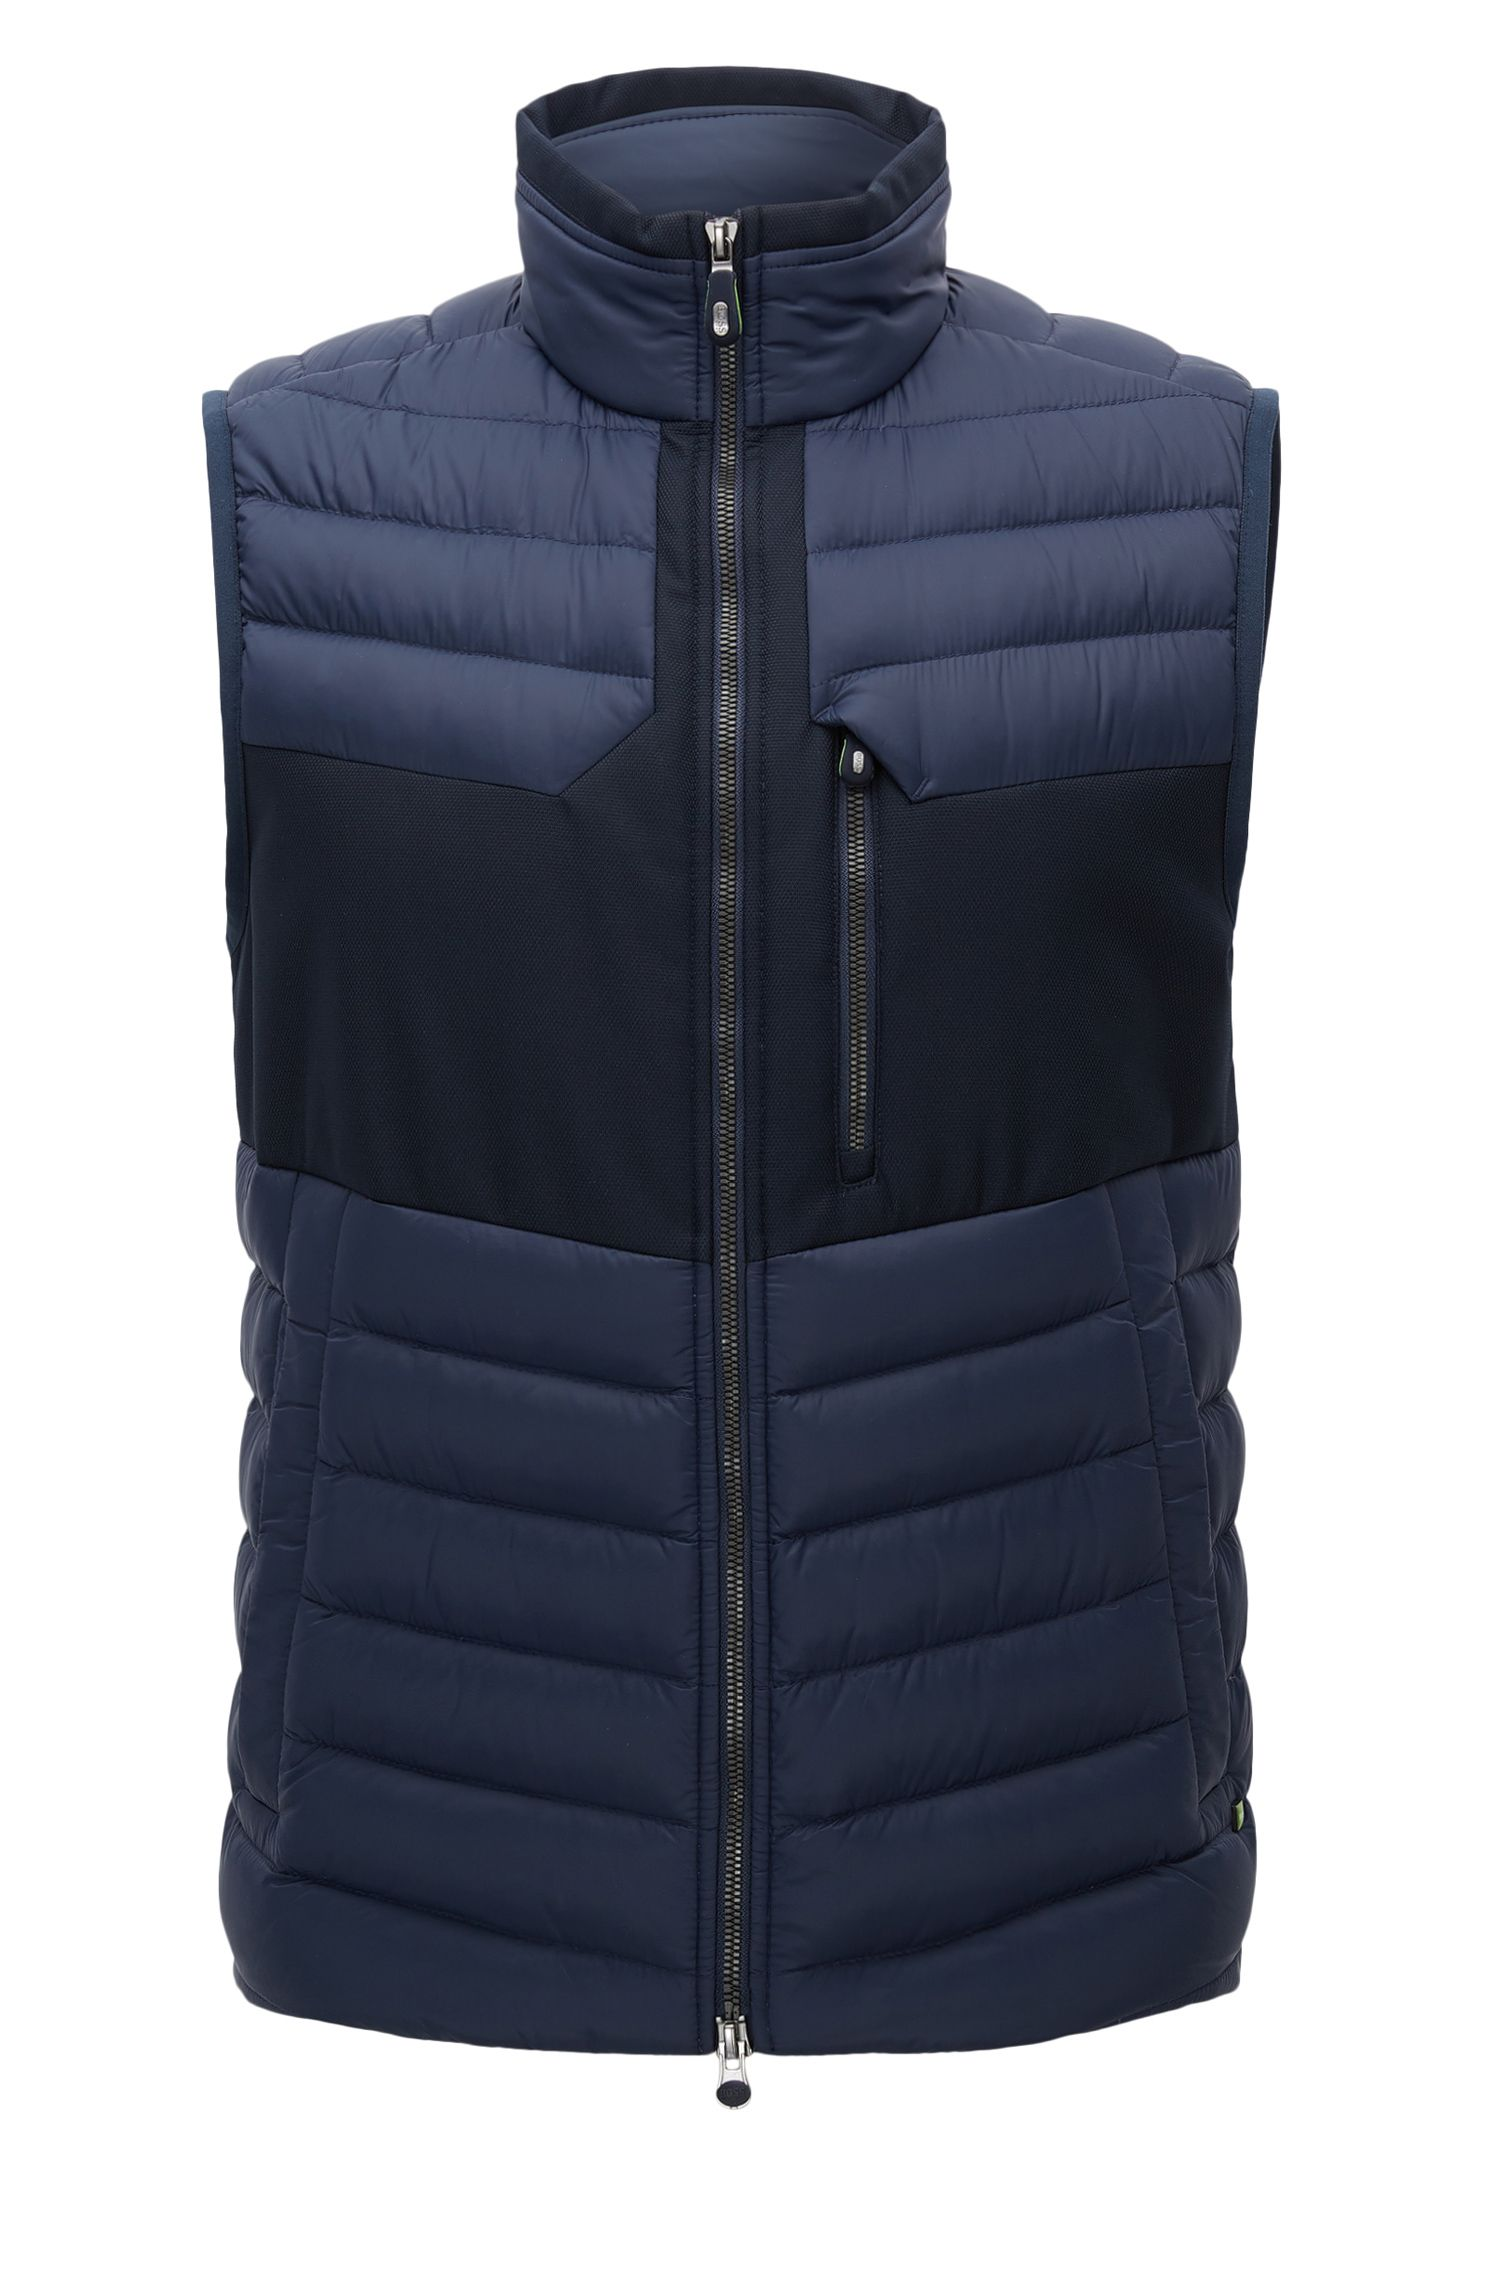 Gilet regular fit in taffetà idrorepellente